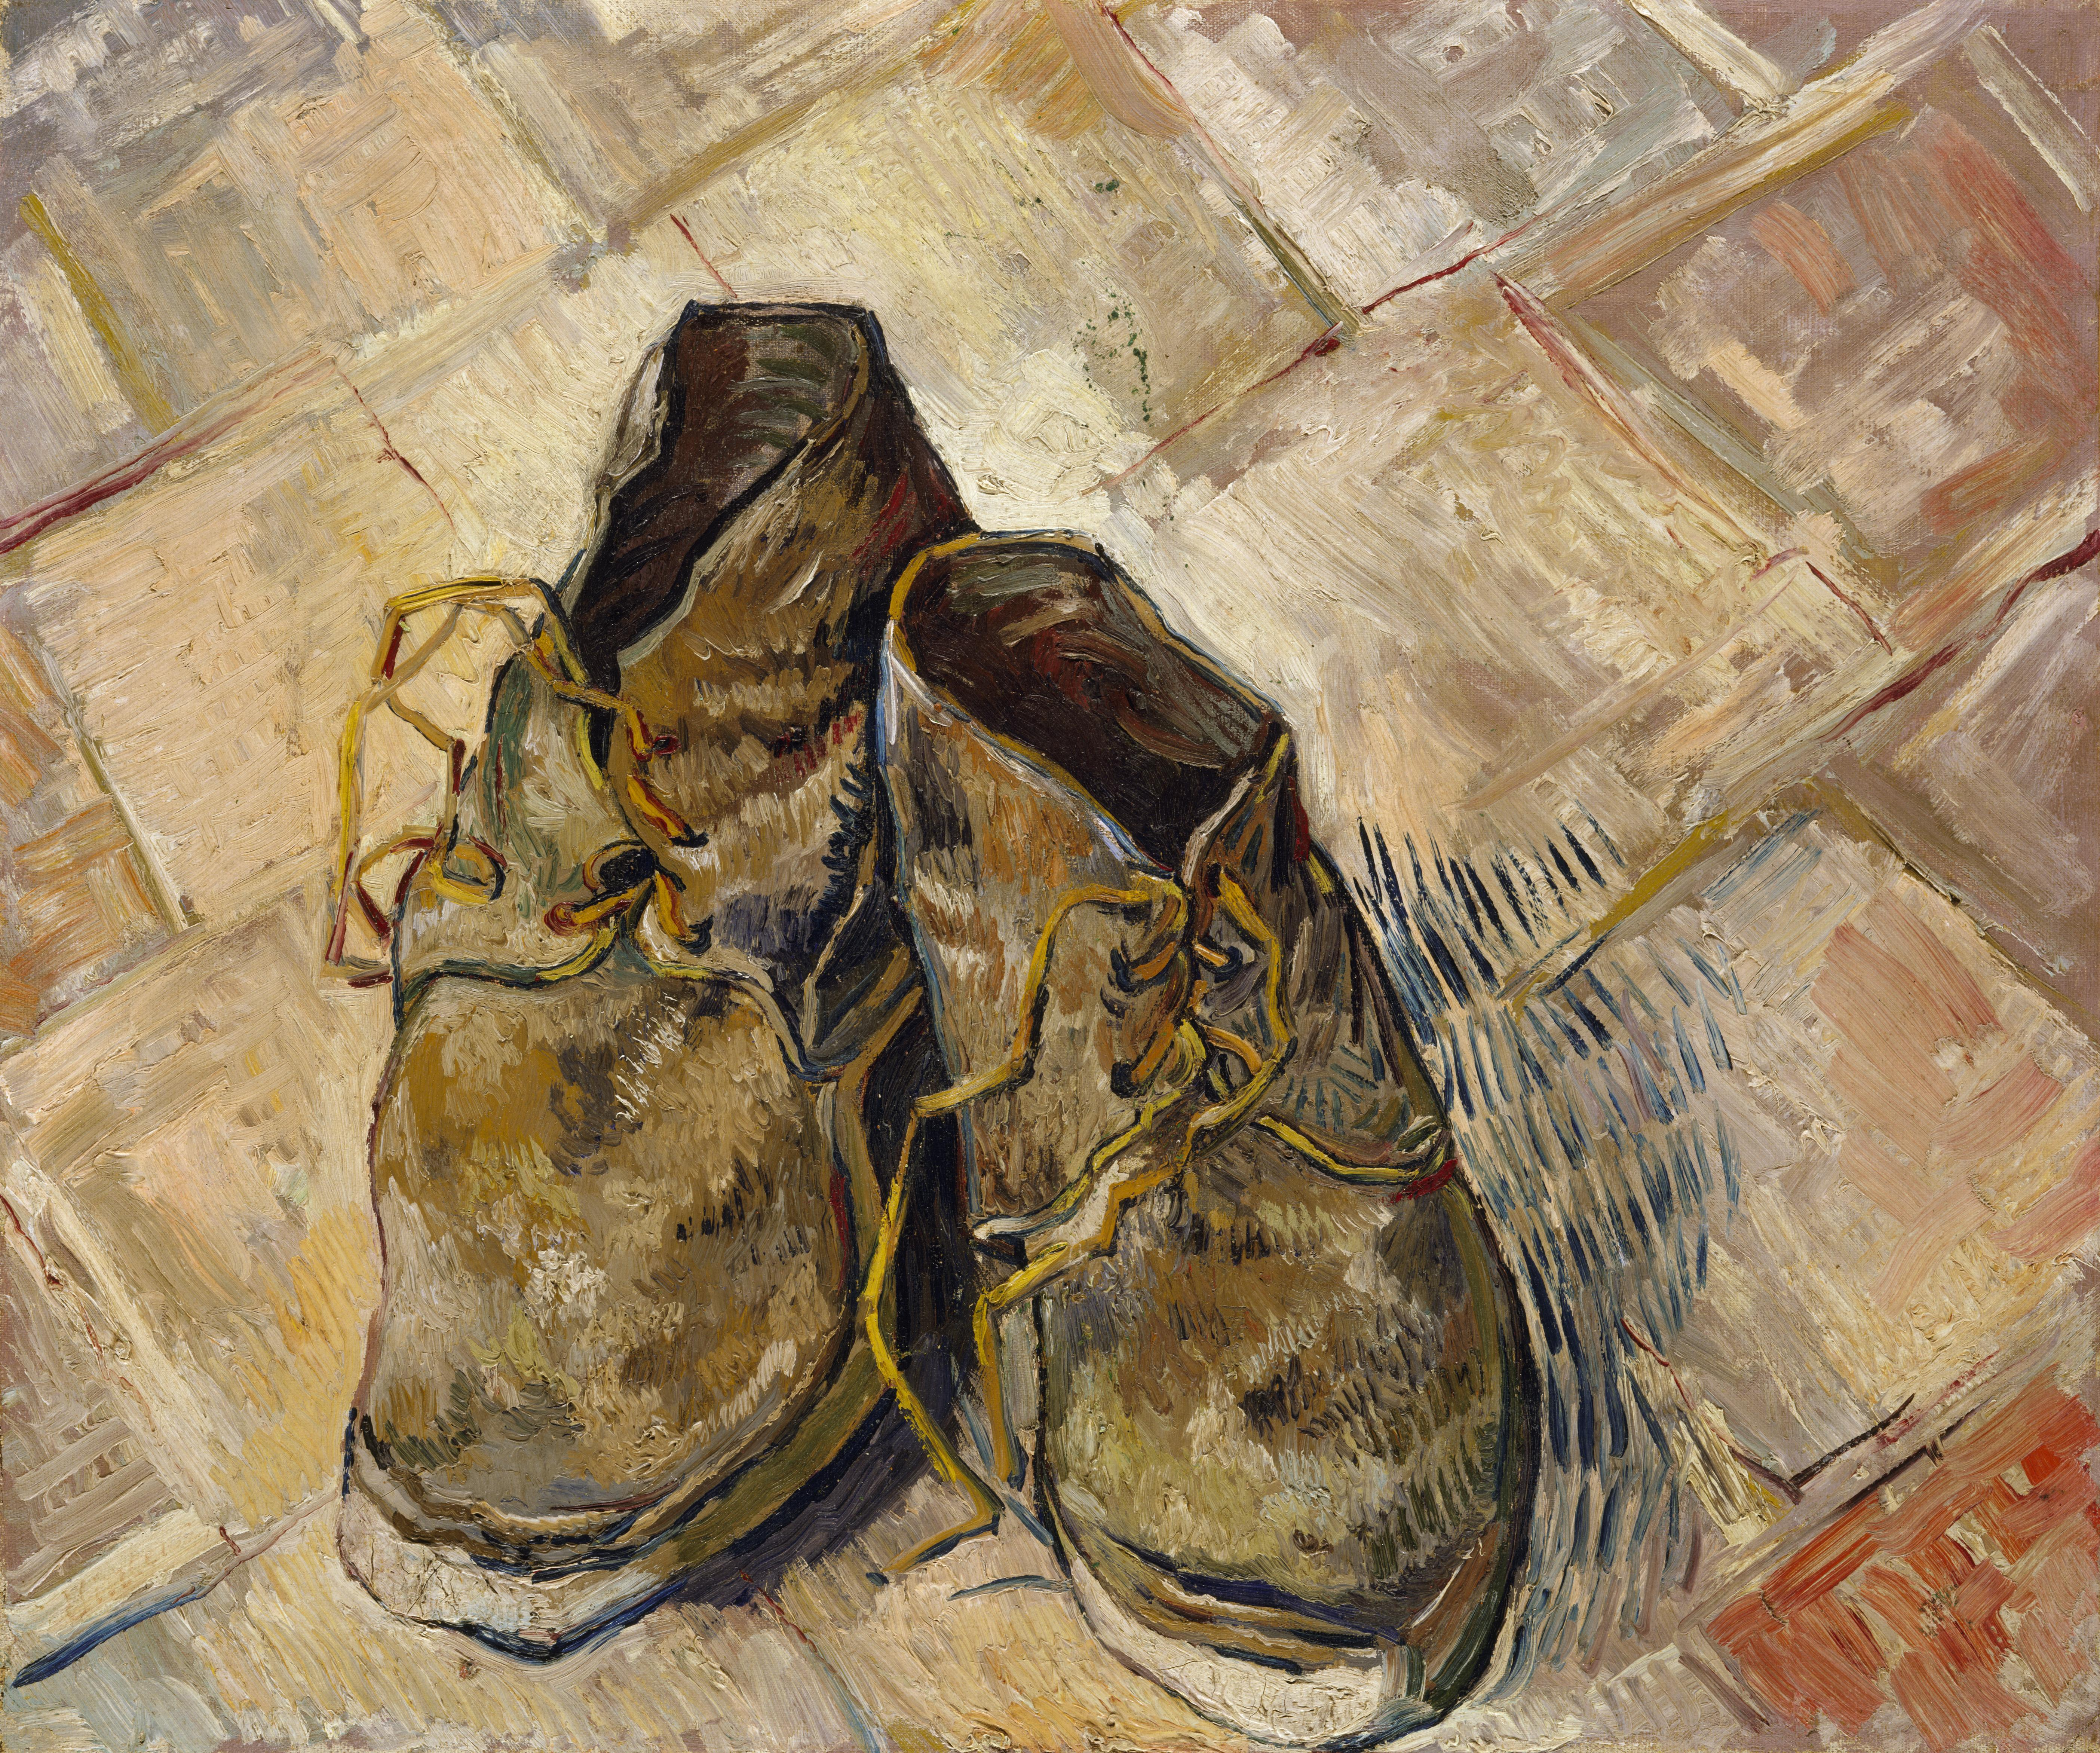 To Kill A Mockingbird Essay On Prejudice Filevincent Van Gogh  Shoes Jpg Speak By Laurie Halse Anderson Essay also Reflective Writing Essay Samples Filevincent Van Gogh  Shoes Jpg  Wikimedia Commons Best College App Essays